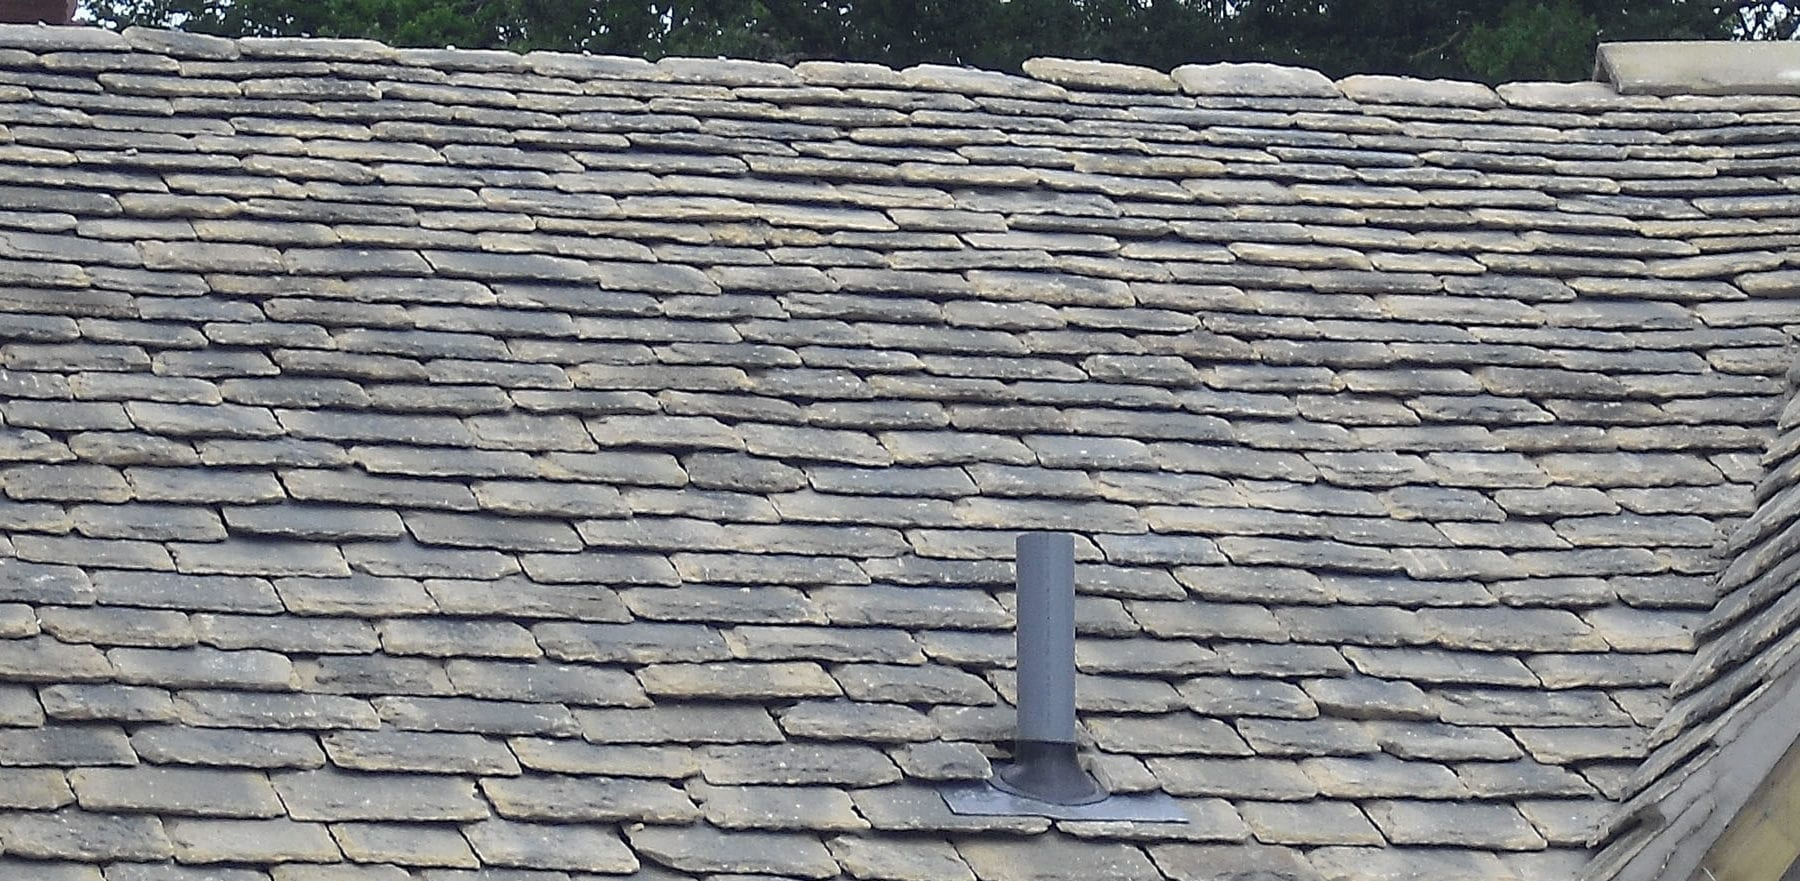 Lifestiles - Natural Stone Aged Roof Tiles - Letcombe, England